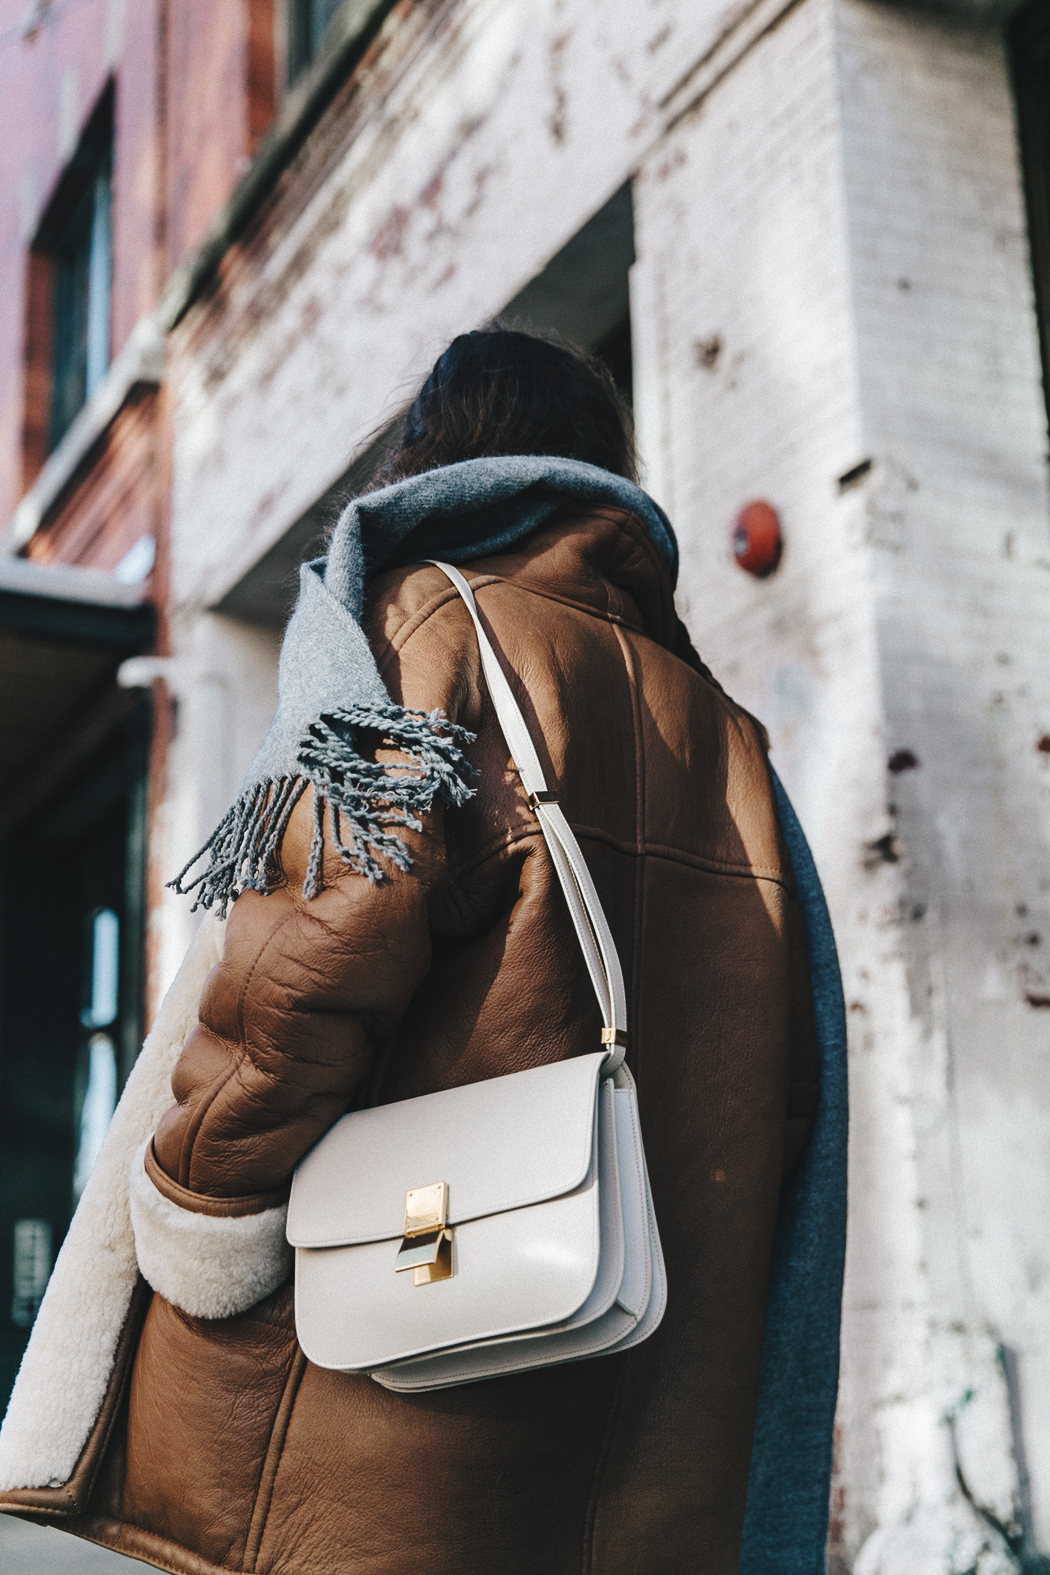 Denim_Lover-Topshop_Jeans-Vintage_Coat-Grey_Scarf-Brown_Booties-Navy_Sweayer-Denim_Shirt-Braids-NYFW-New_York_Fashion_Week-Street_style-Celine_Bag-Vestiaire_Collective-47